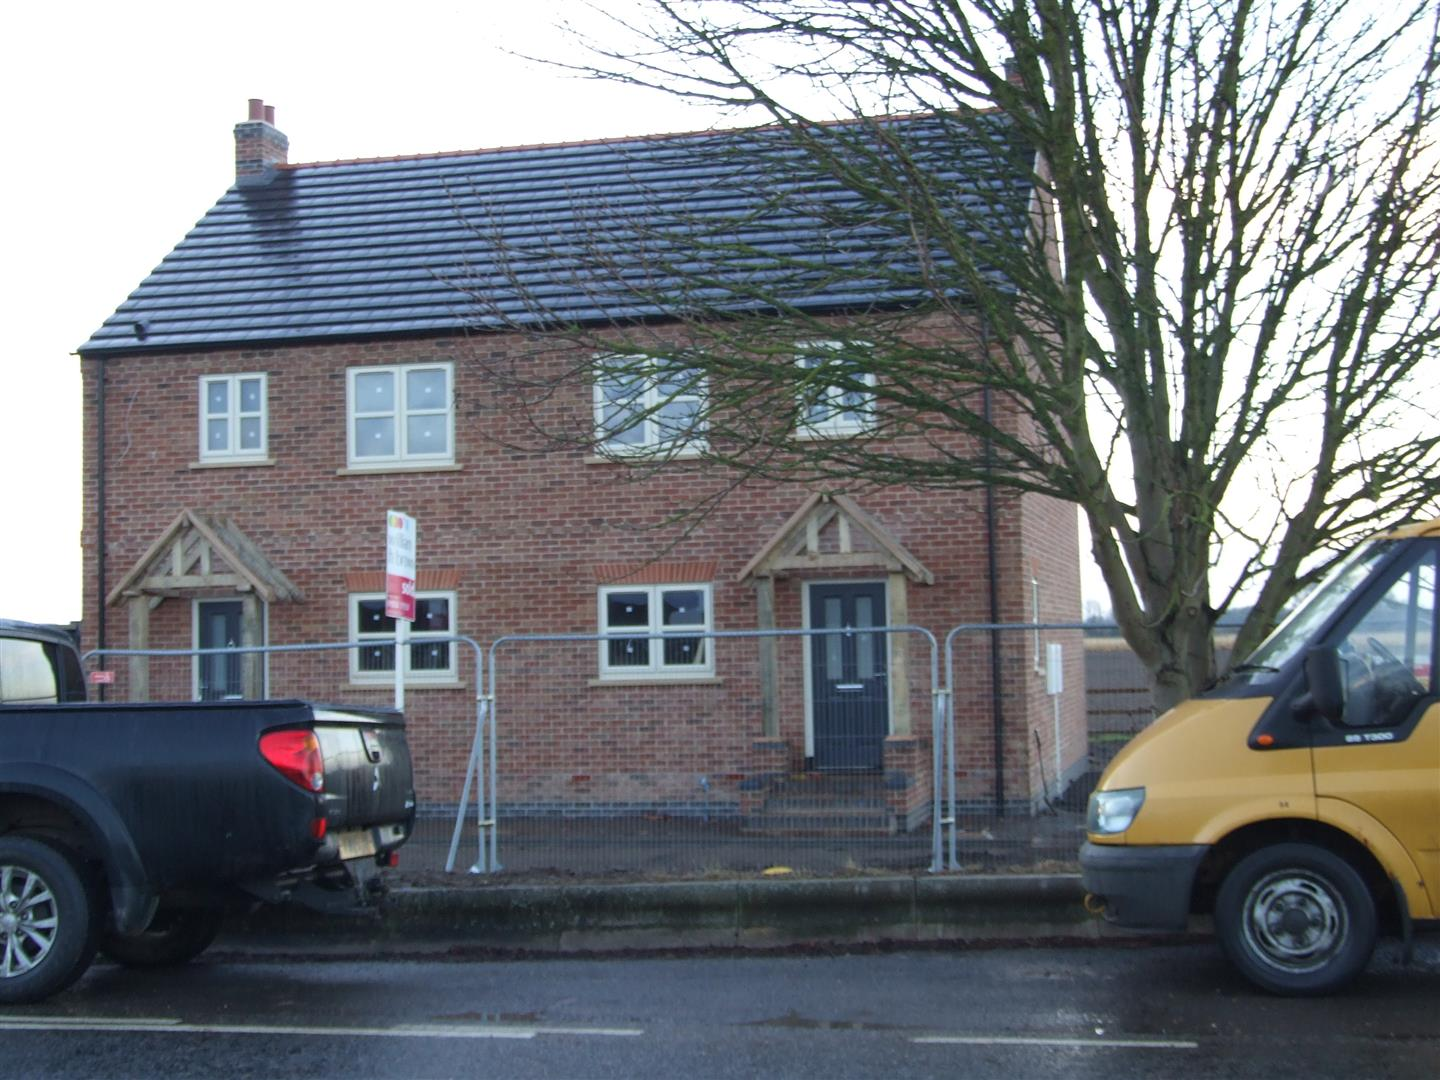 3 bed house to rent in Bridge Road, Sutton Bridge Spalding, PE12